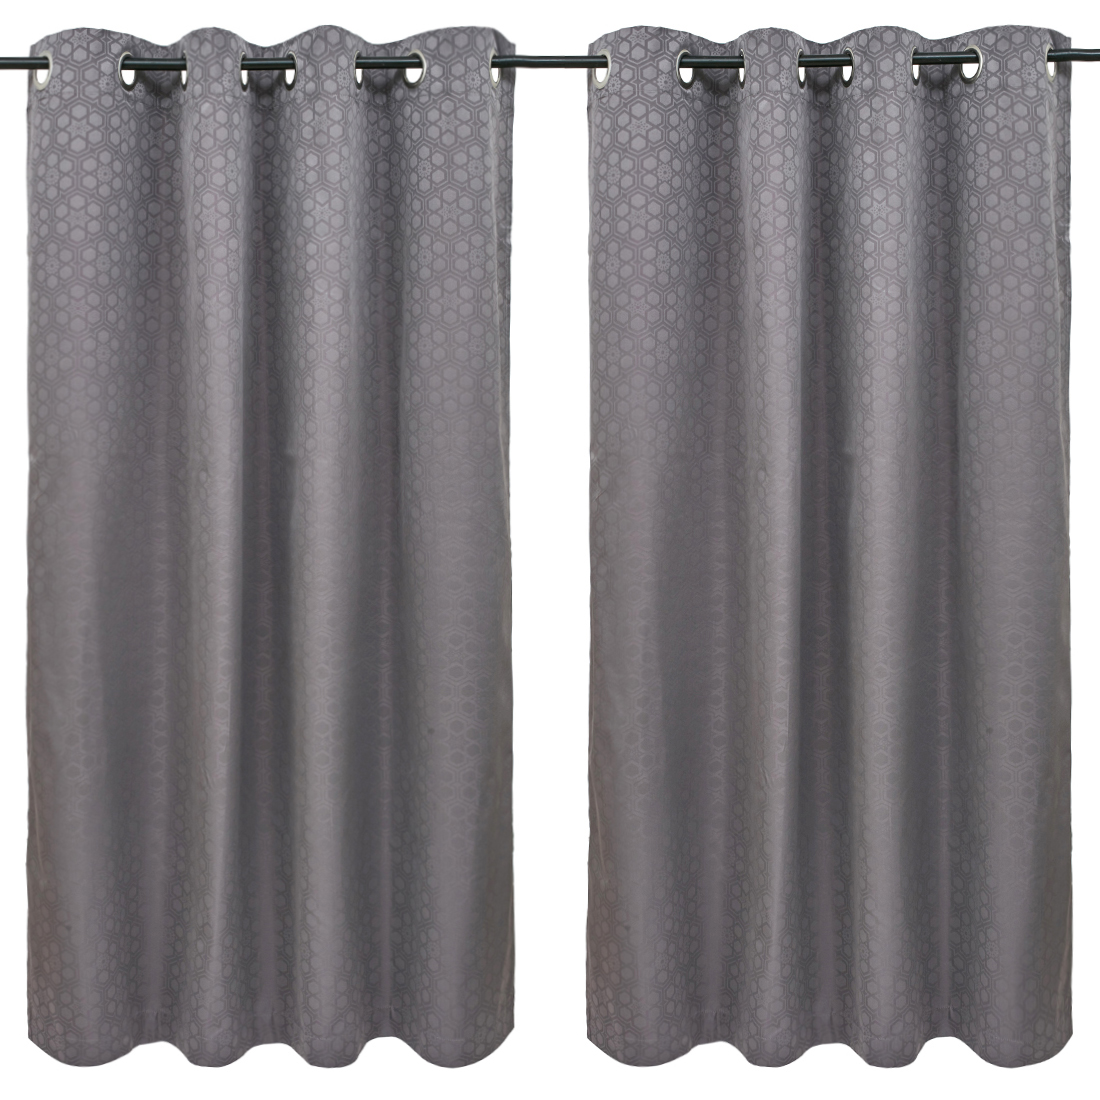 Emilia Jacquard set of 2 Polyester Window Curtains in Charcoal Colour by Living Essence